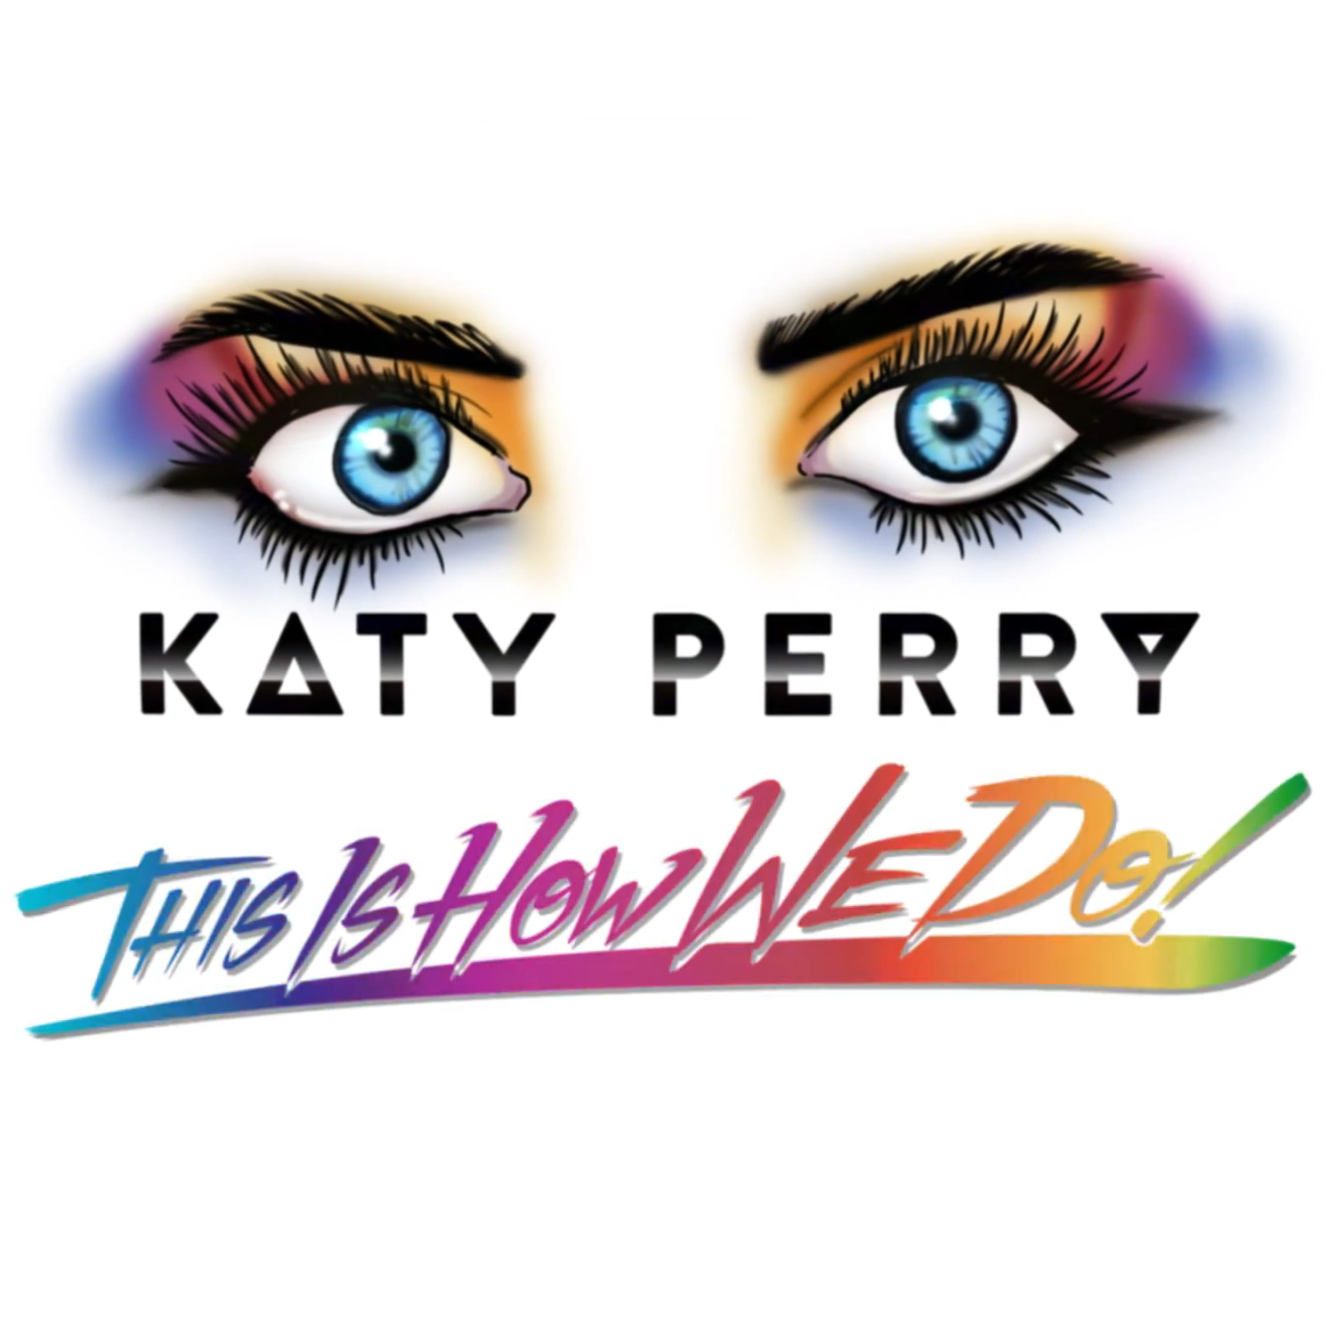 Katy perry this is how we do 2014 1500x1500